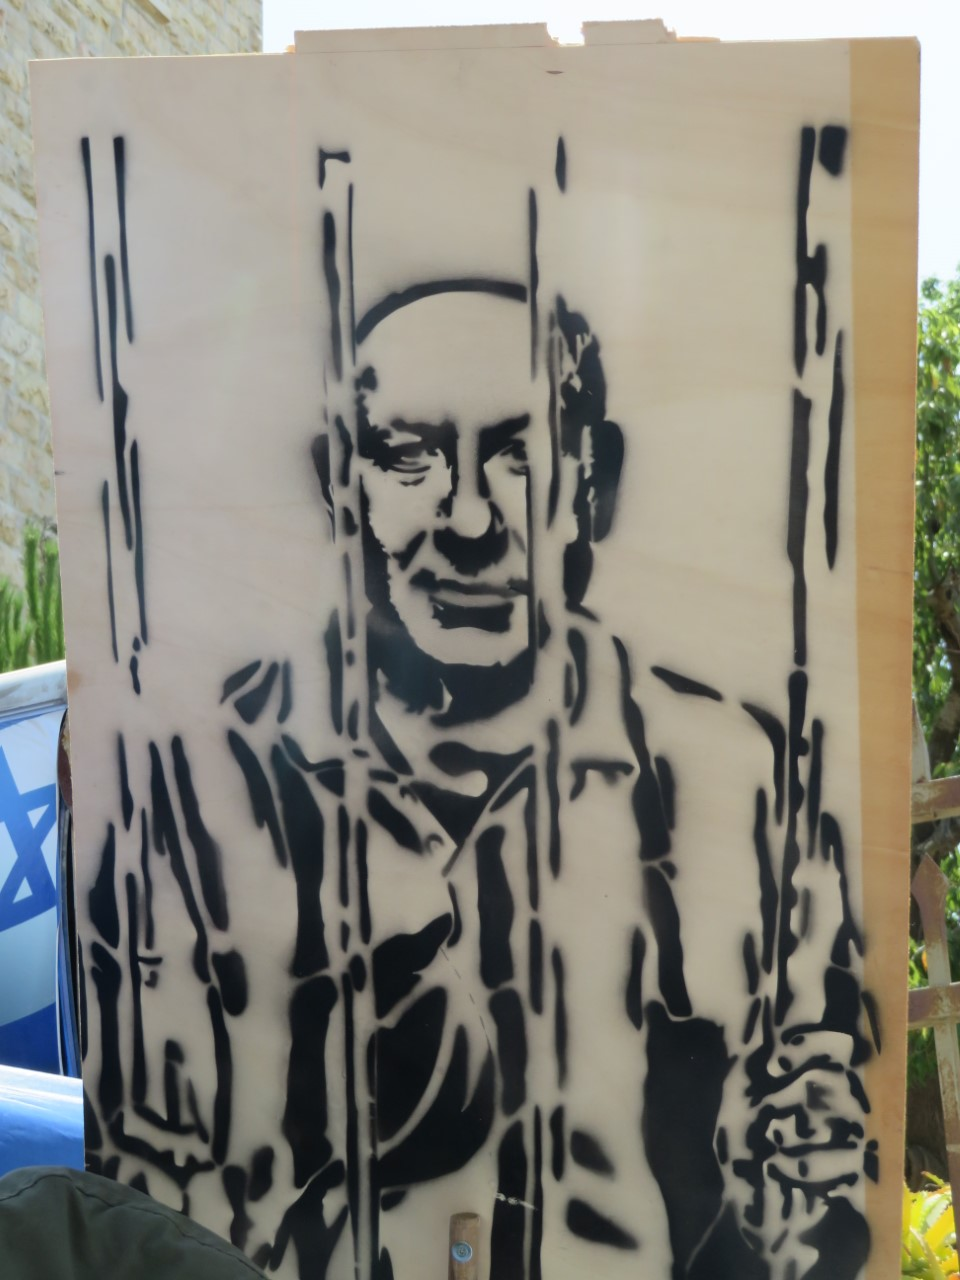 A protest sign outside of the Prime Minister's residence in Jerusalem, depicting Benjamin Netanyahu behind bars.